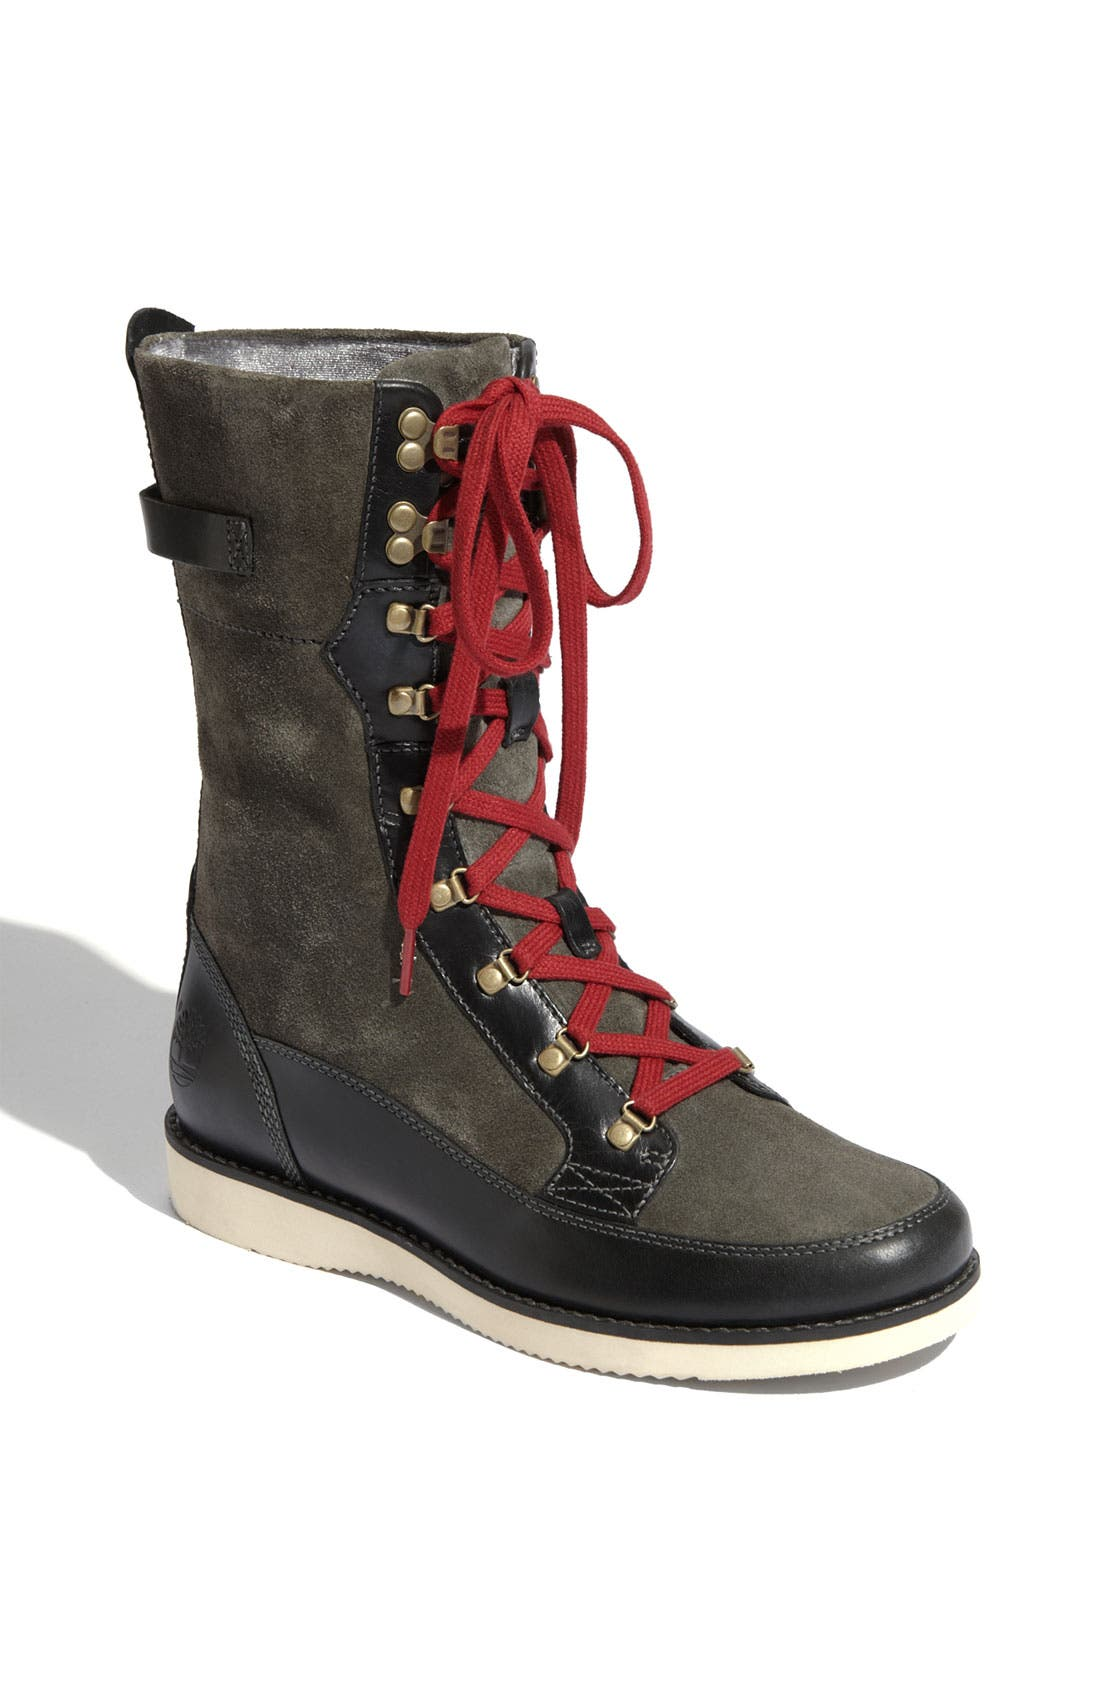 Alternate Image 1 Selected - Timberland 'Brattle' Boot